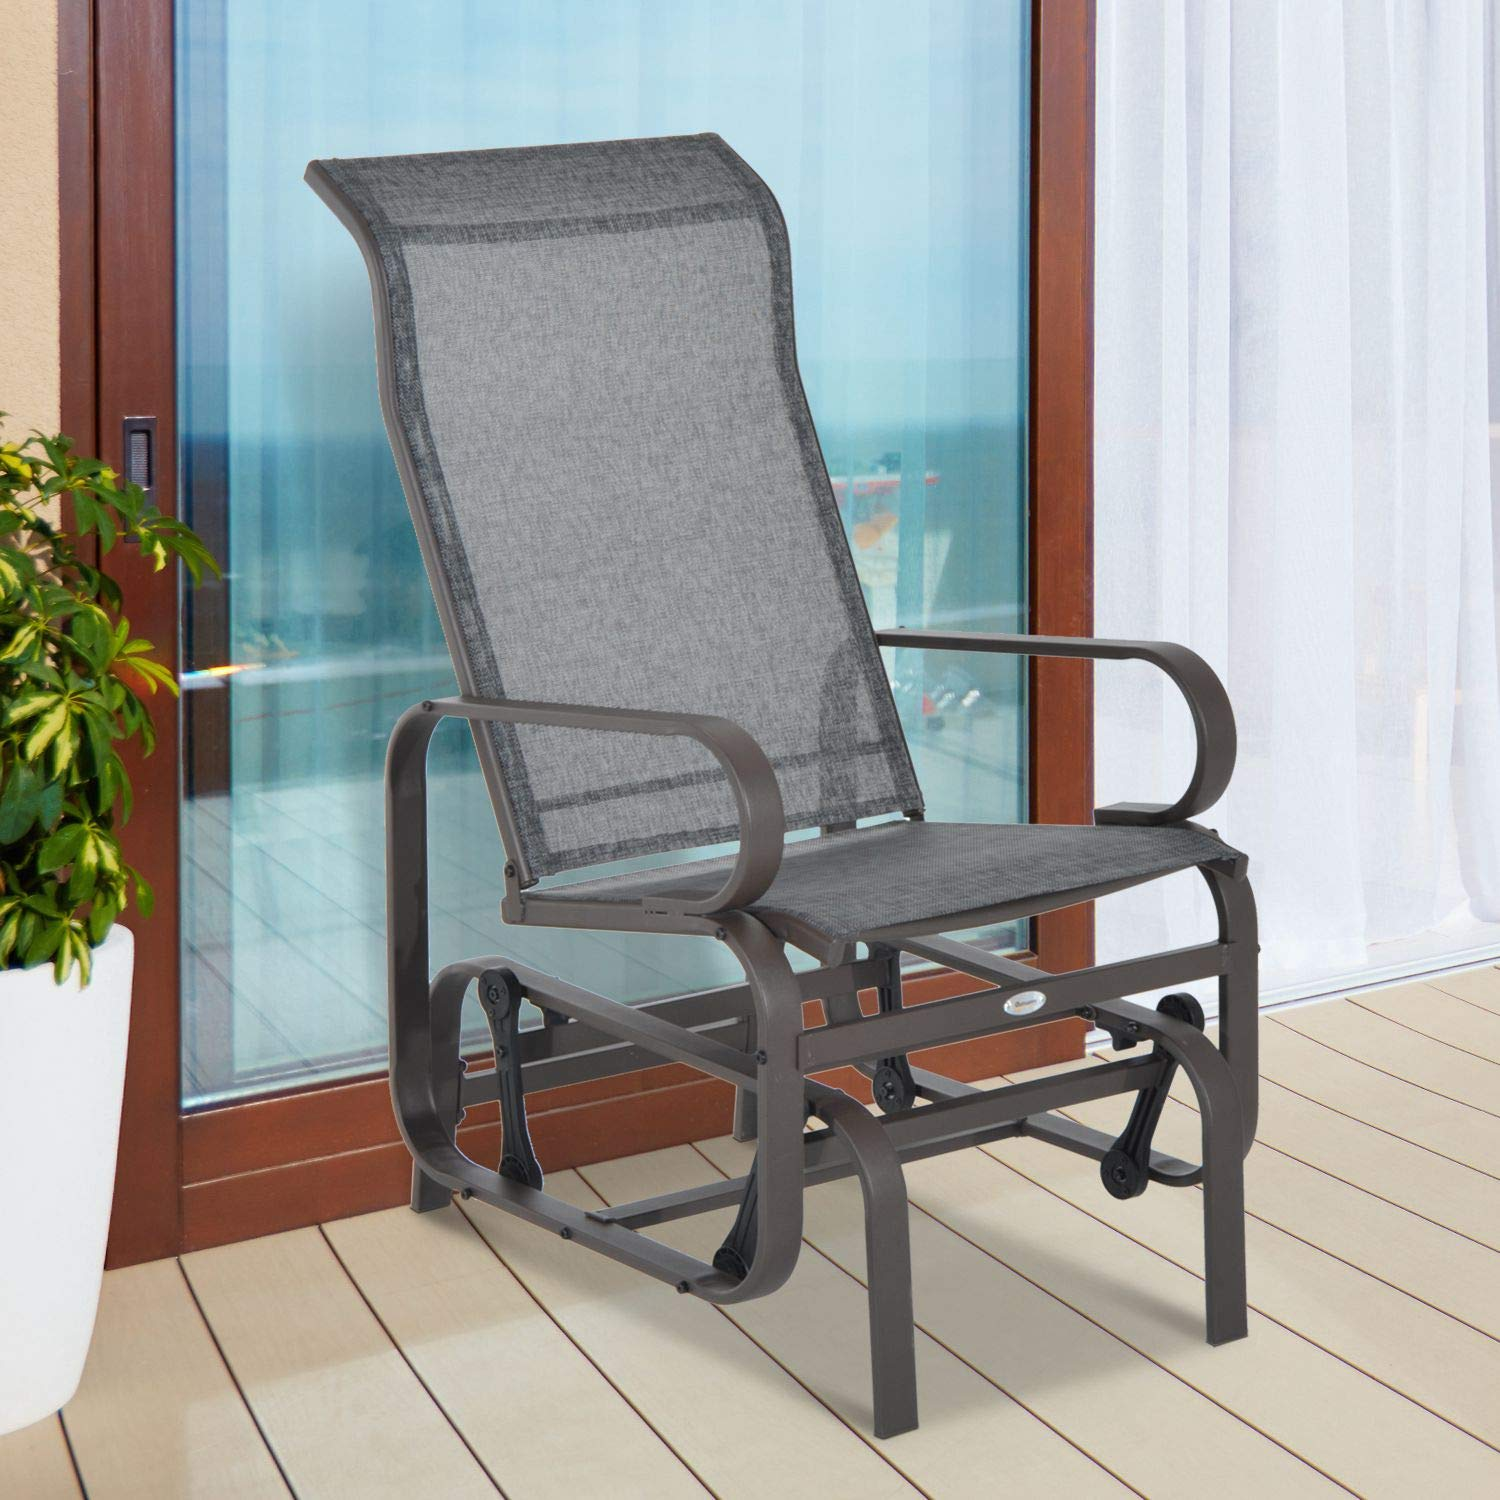 Outsunny Metal Mesh Fabric Single Outdoor Patio Glider Rocking Chair – Brown